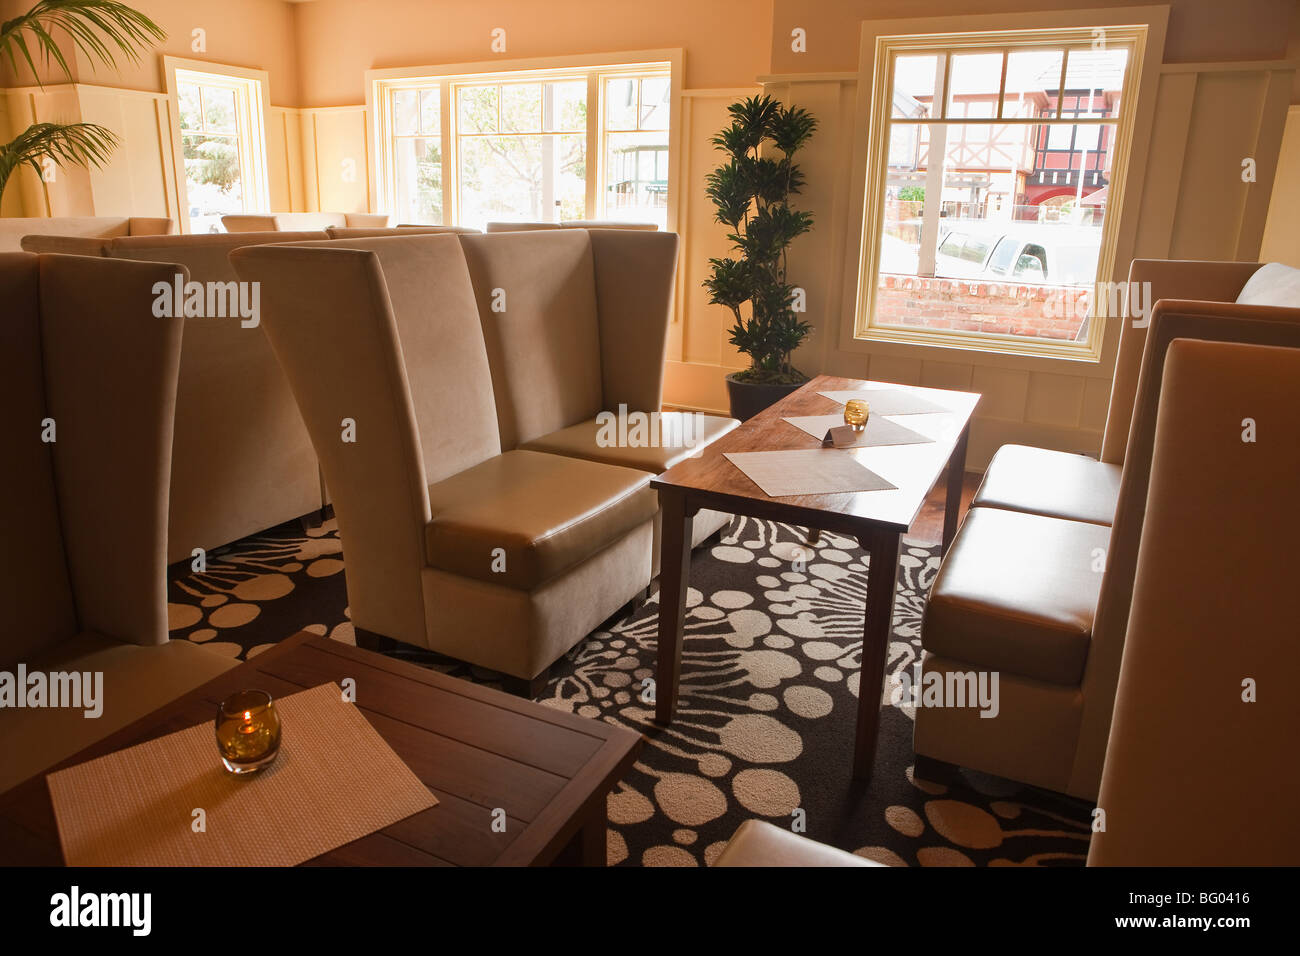 lounge, Root 246 Restaurant, Solvang, California, United States of America - Stock Image